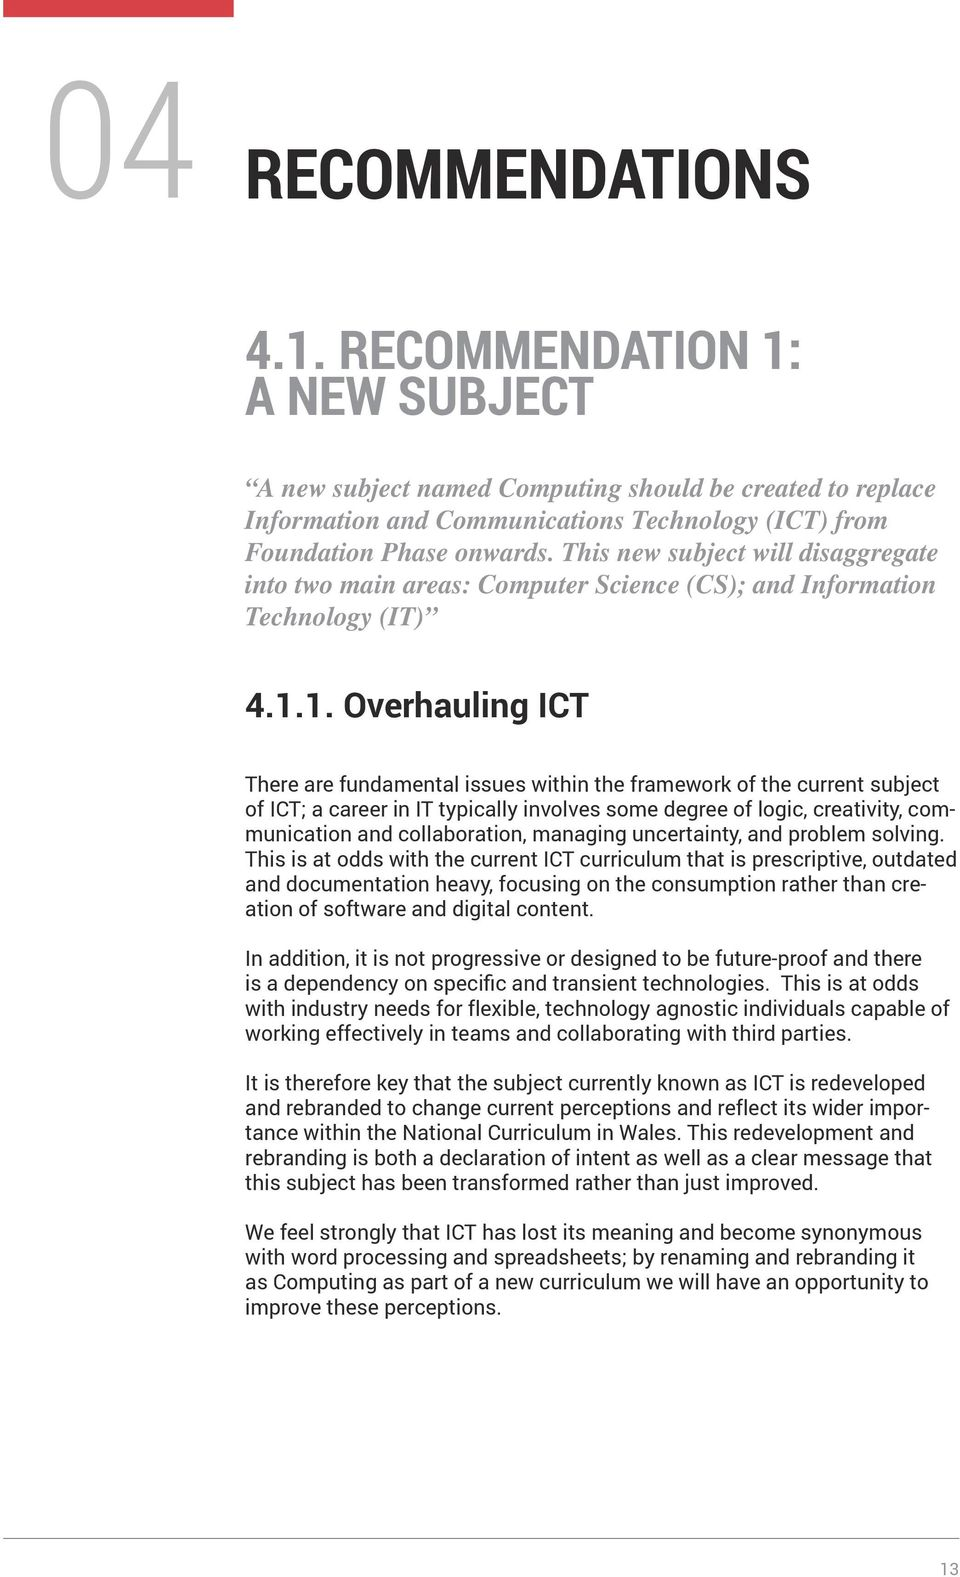 1. Overhauling ICT There are fundamental issues within the framework of the current subject of ICT; a career in IT typically involves some degree of logic, creativity, communication and